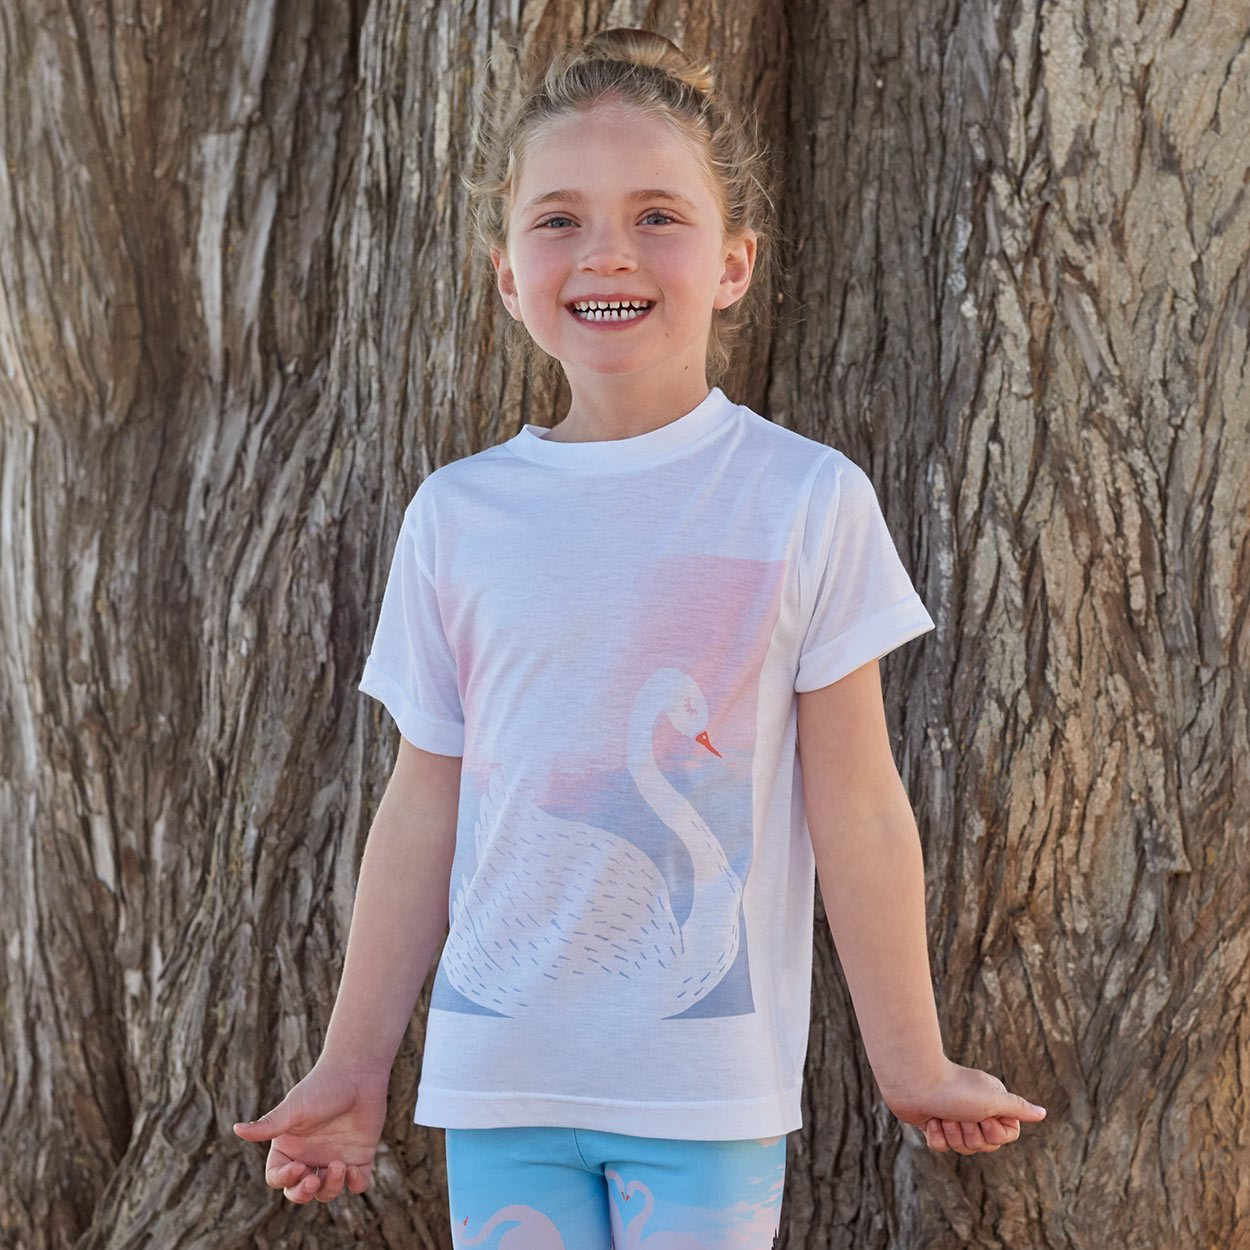 Girls White Swan Graphic Tshirt White Aqua Peach Size Xs L Girl By The Beach Smiling Sunpoplife